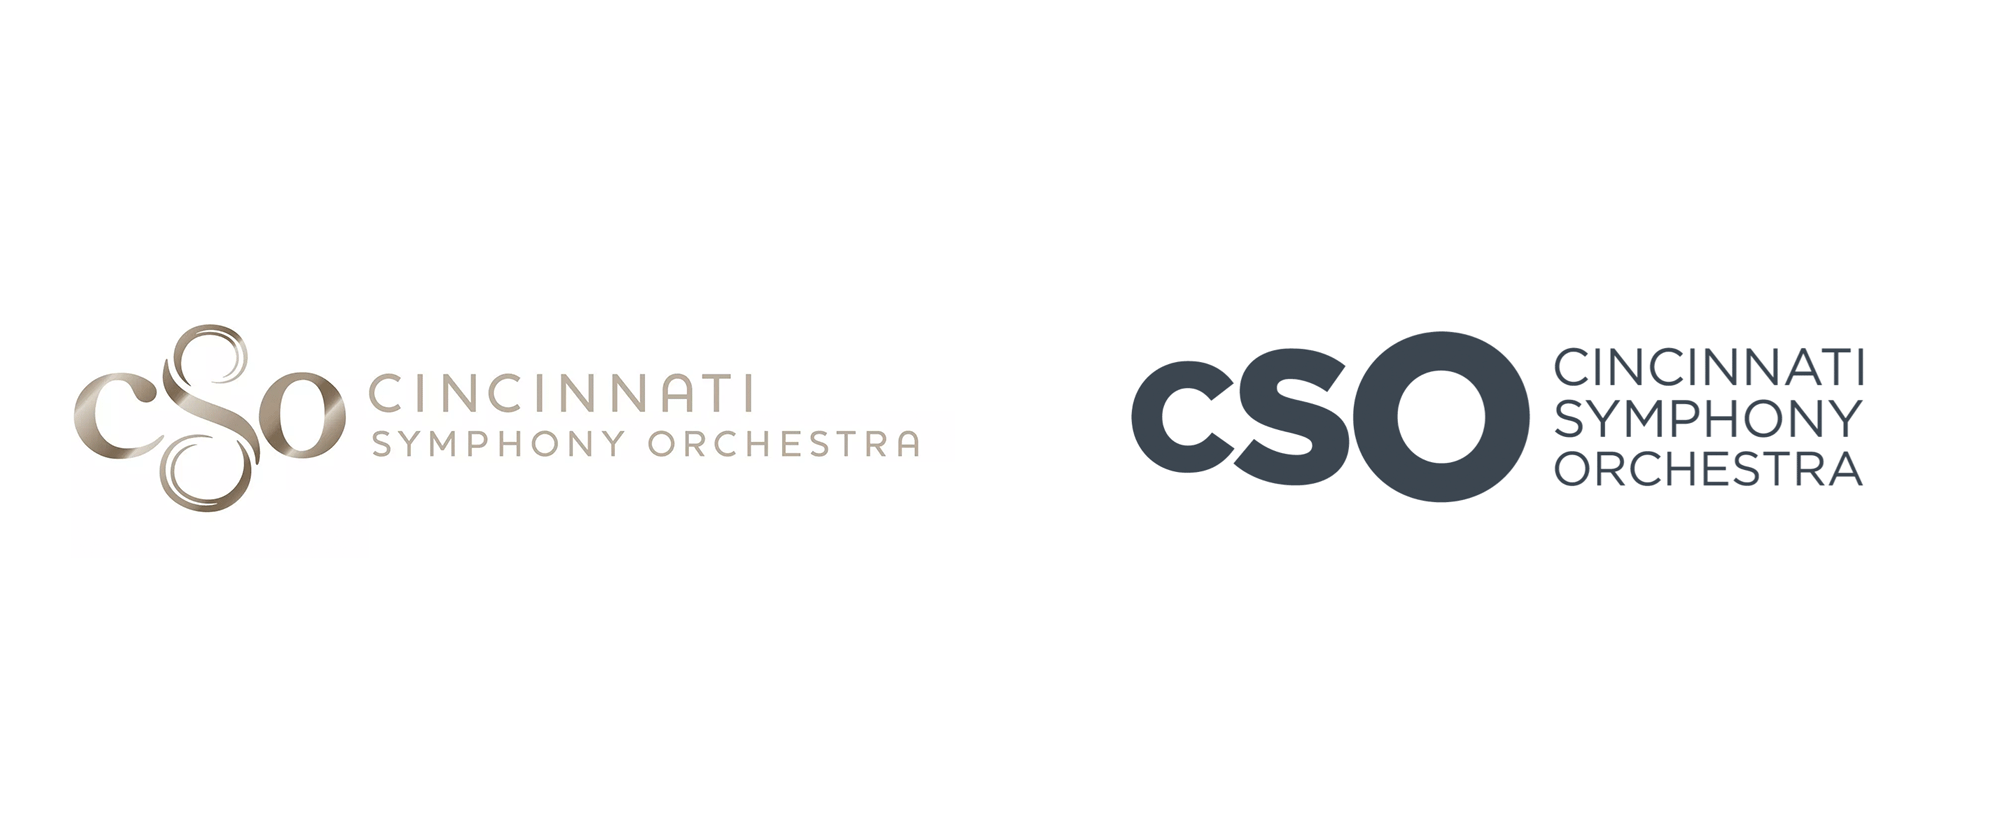 New Logo and Identity for Cincinnati Symphony Orchestra by Troika